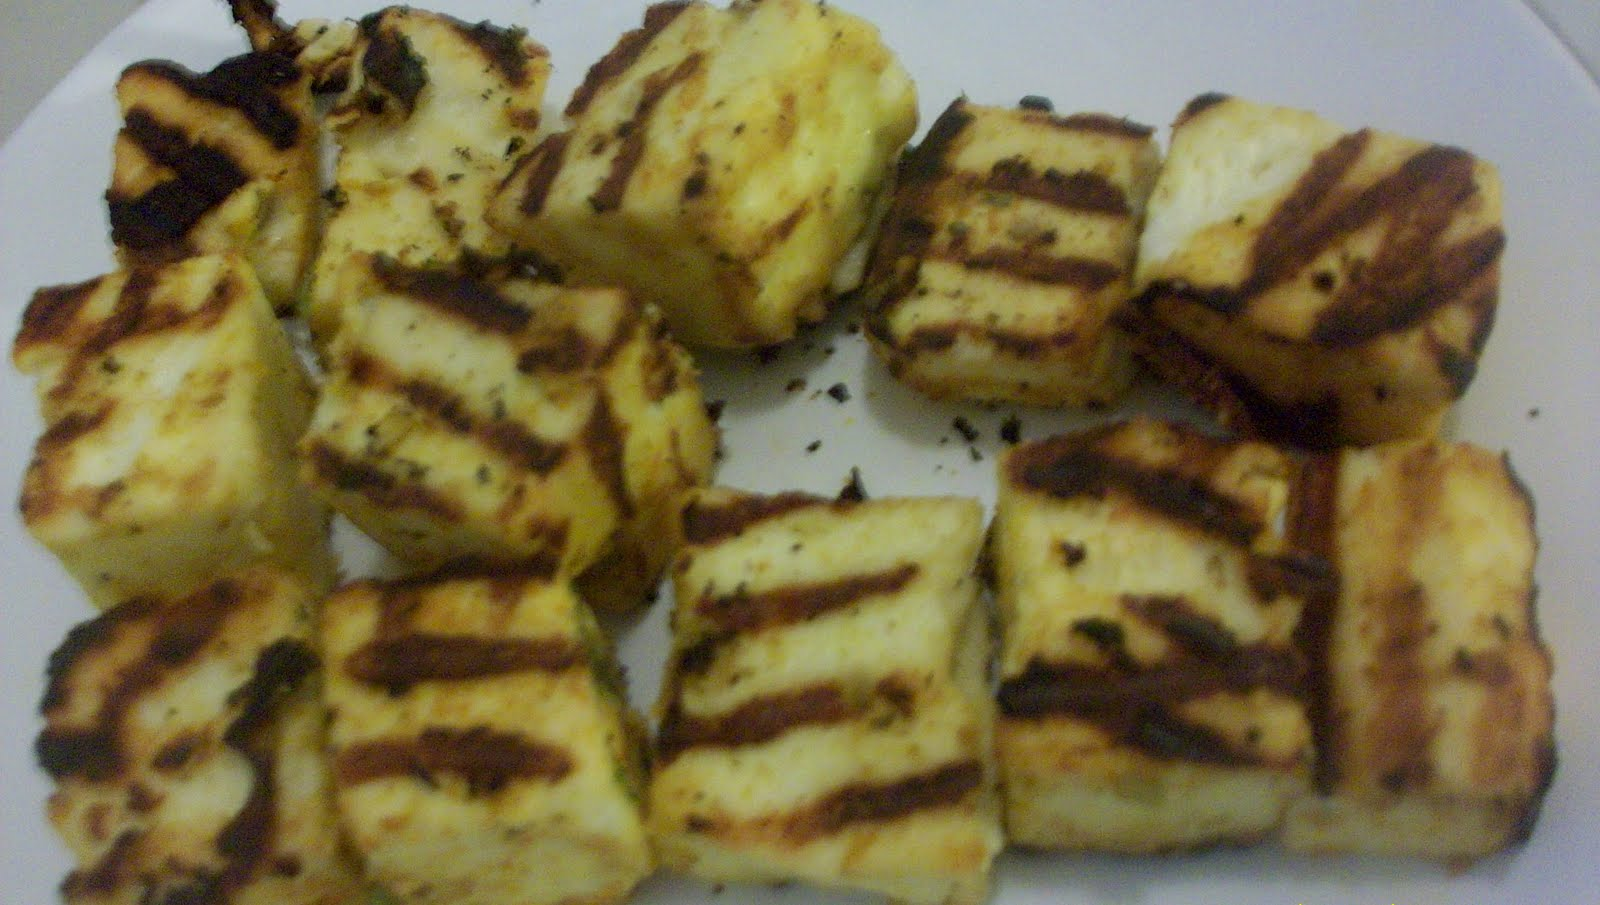 Flavors....Simply Spice it Up!!!: Grilled cottage cheese